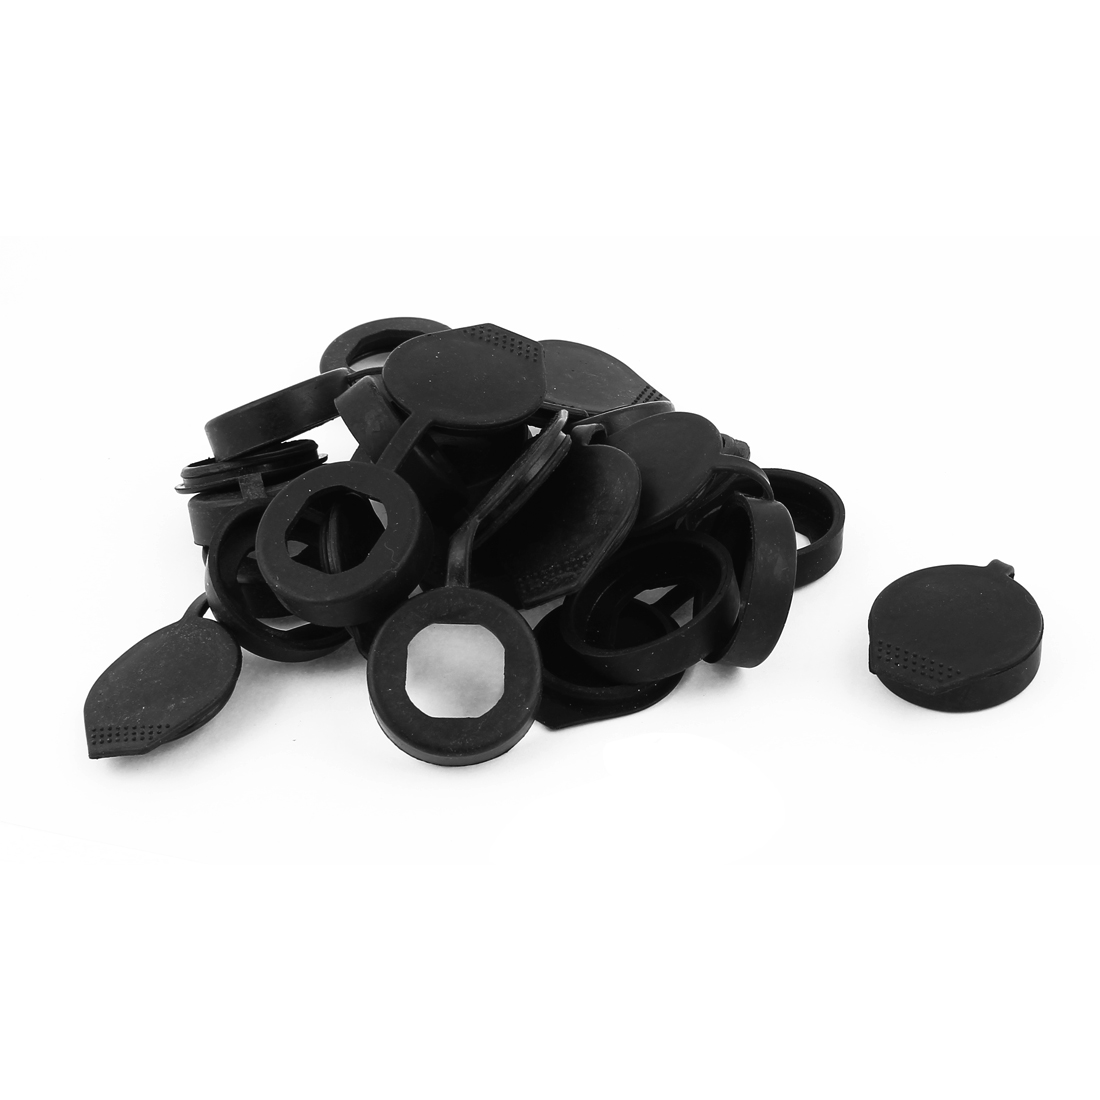 15 Pcs Rubber Key Panel Cam Lock Dust Waterproof Cover Black